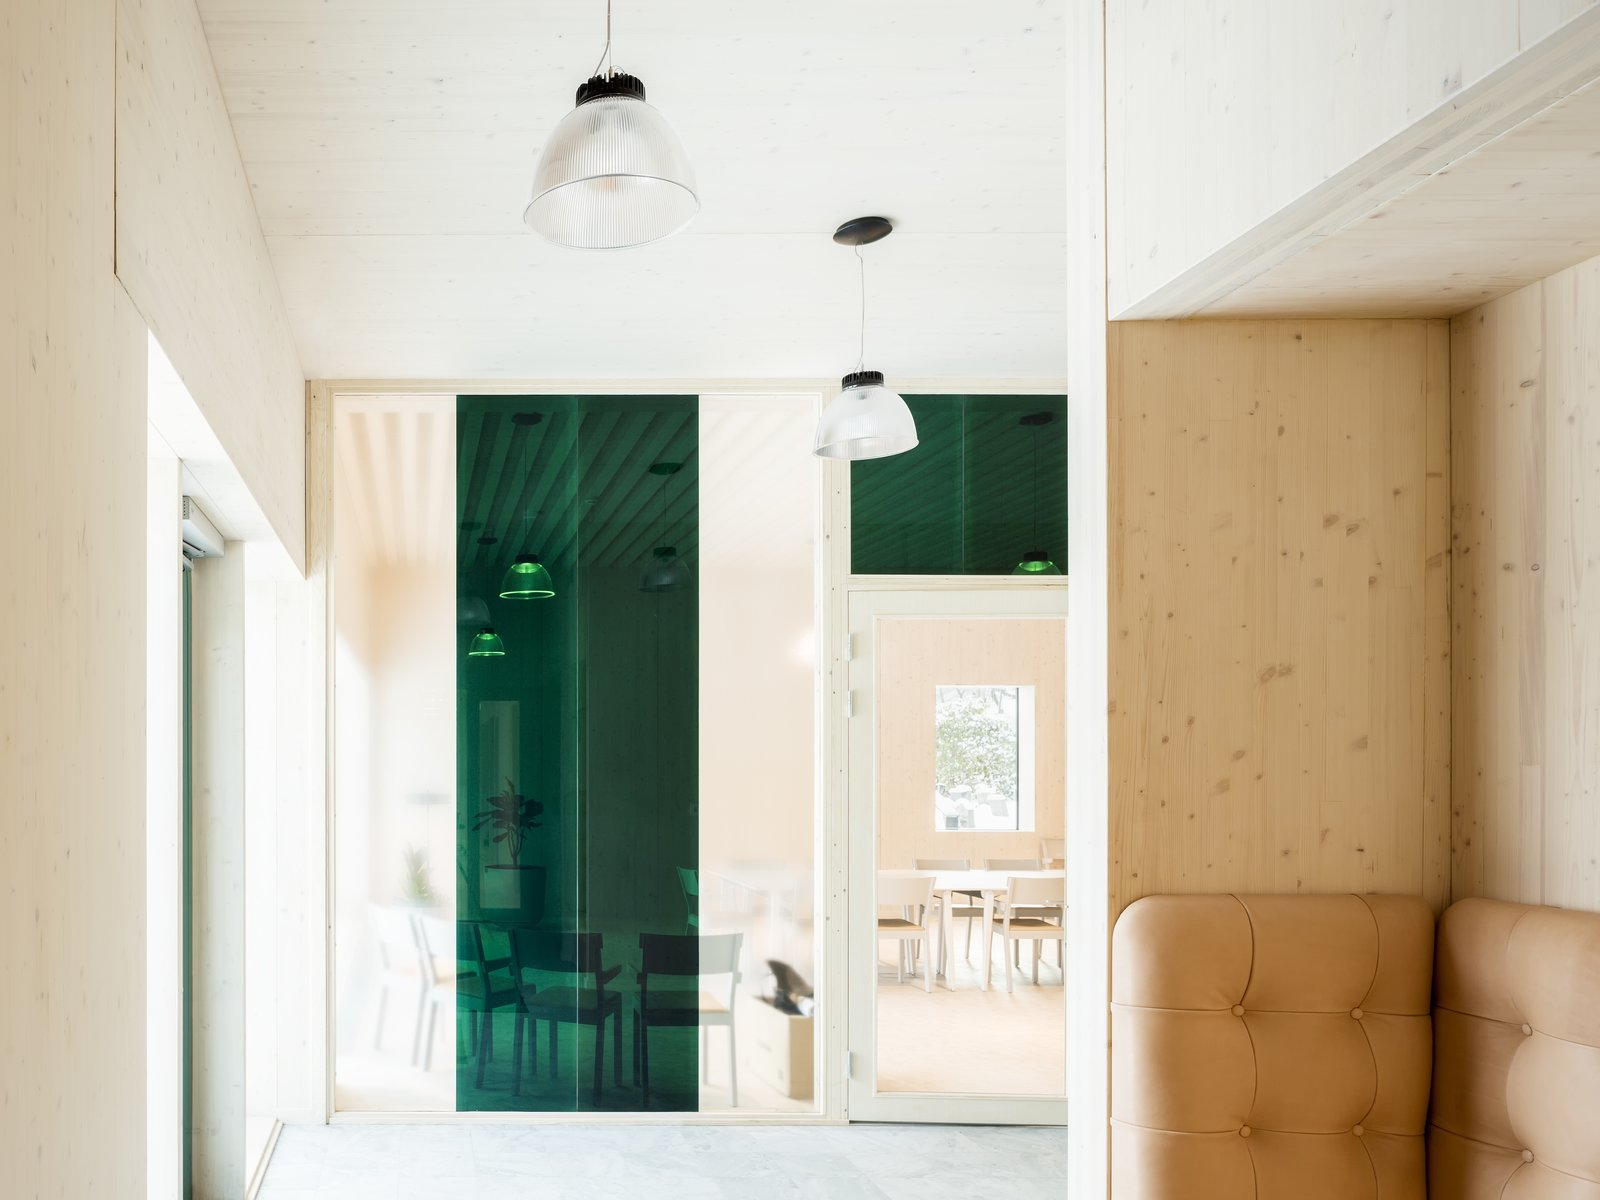 The interior design is characterized by restraint. Wood complements leather and concrete for a modern, natural-looking building that blend together with its lush surroundings.